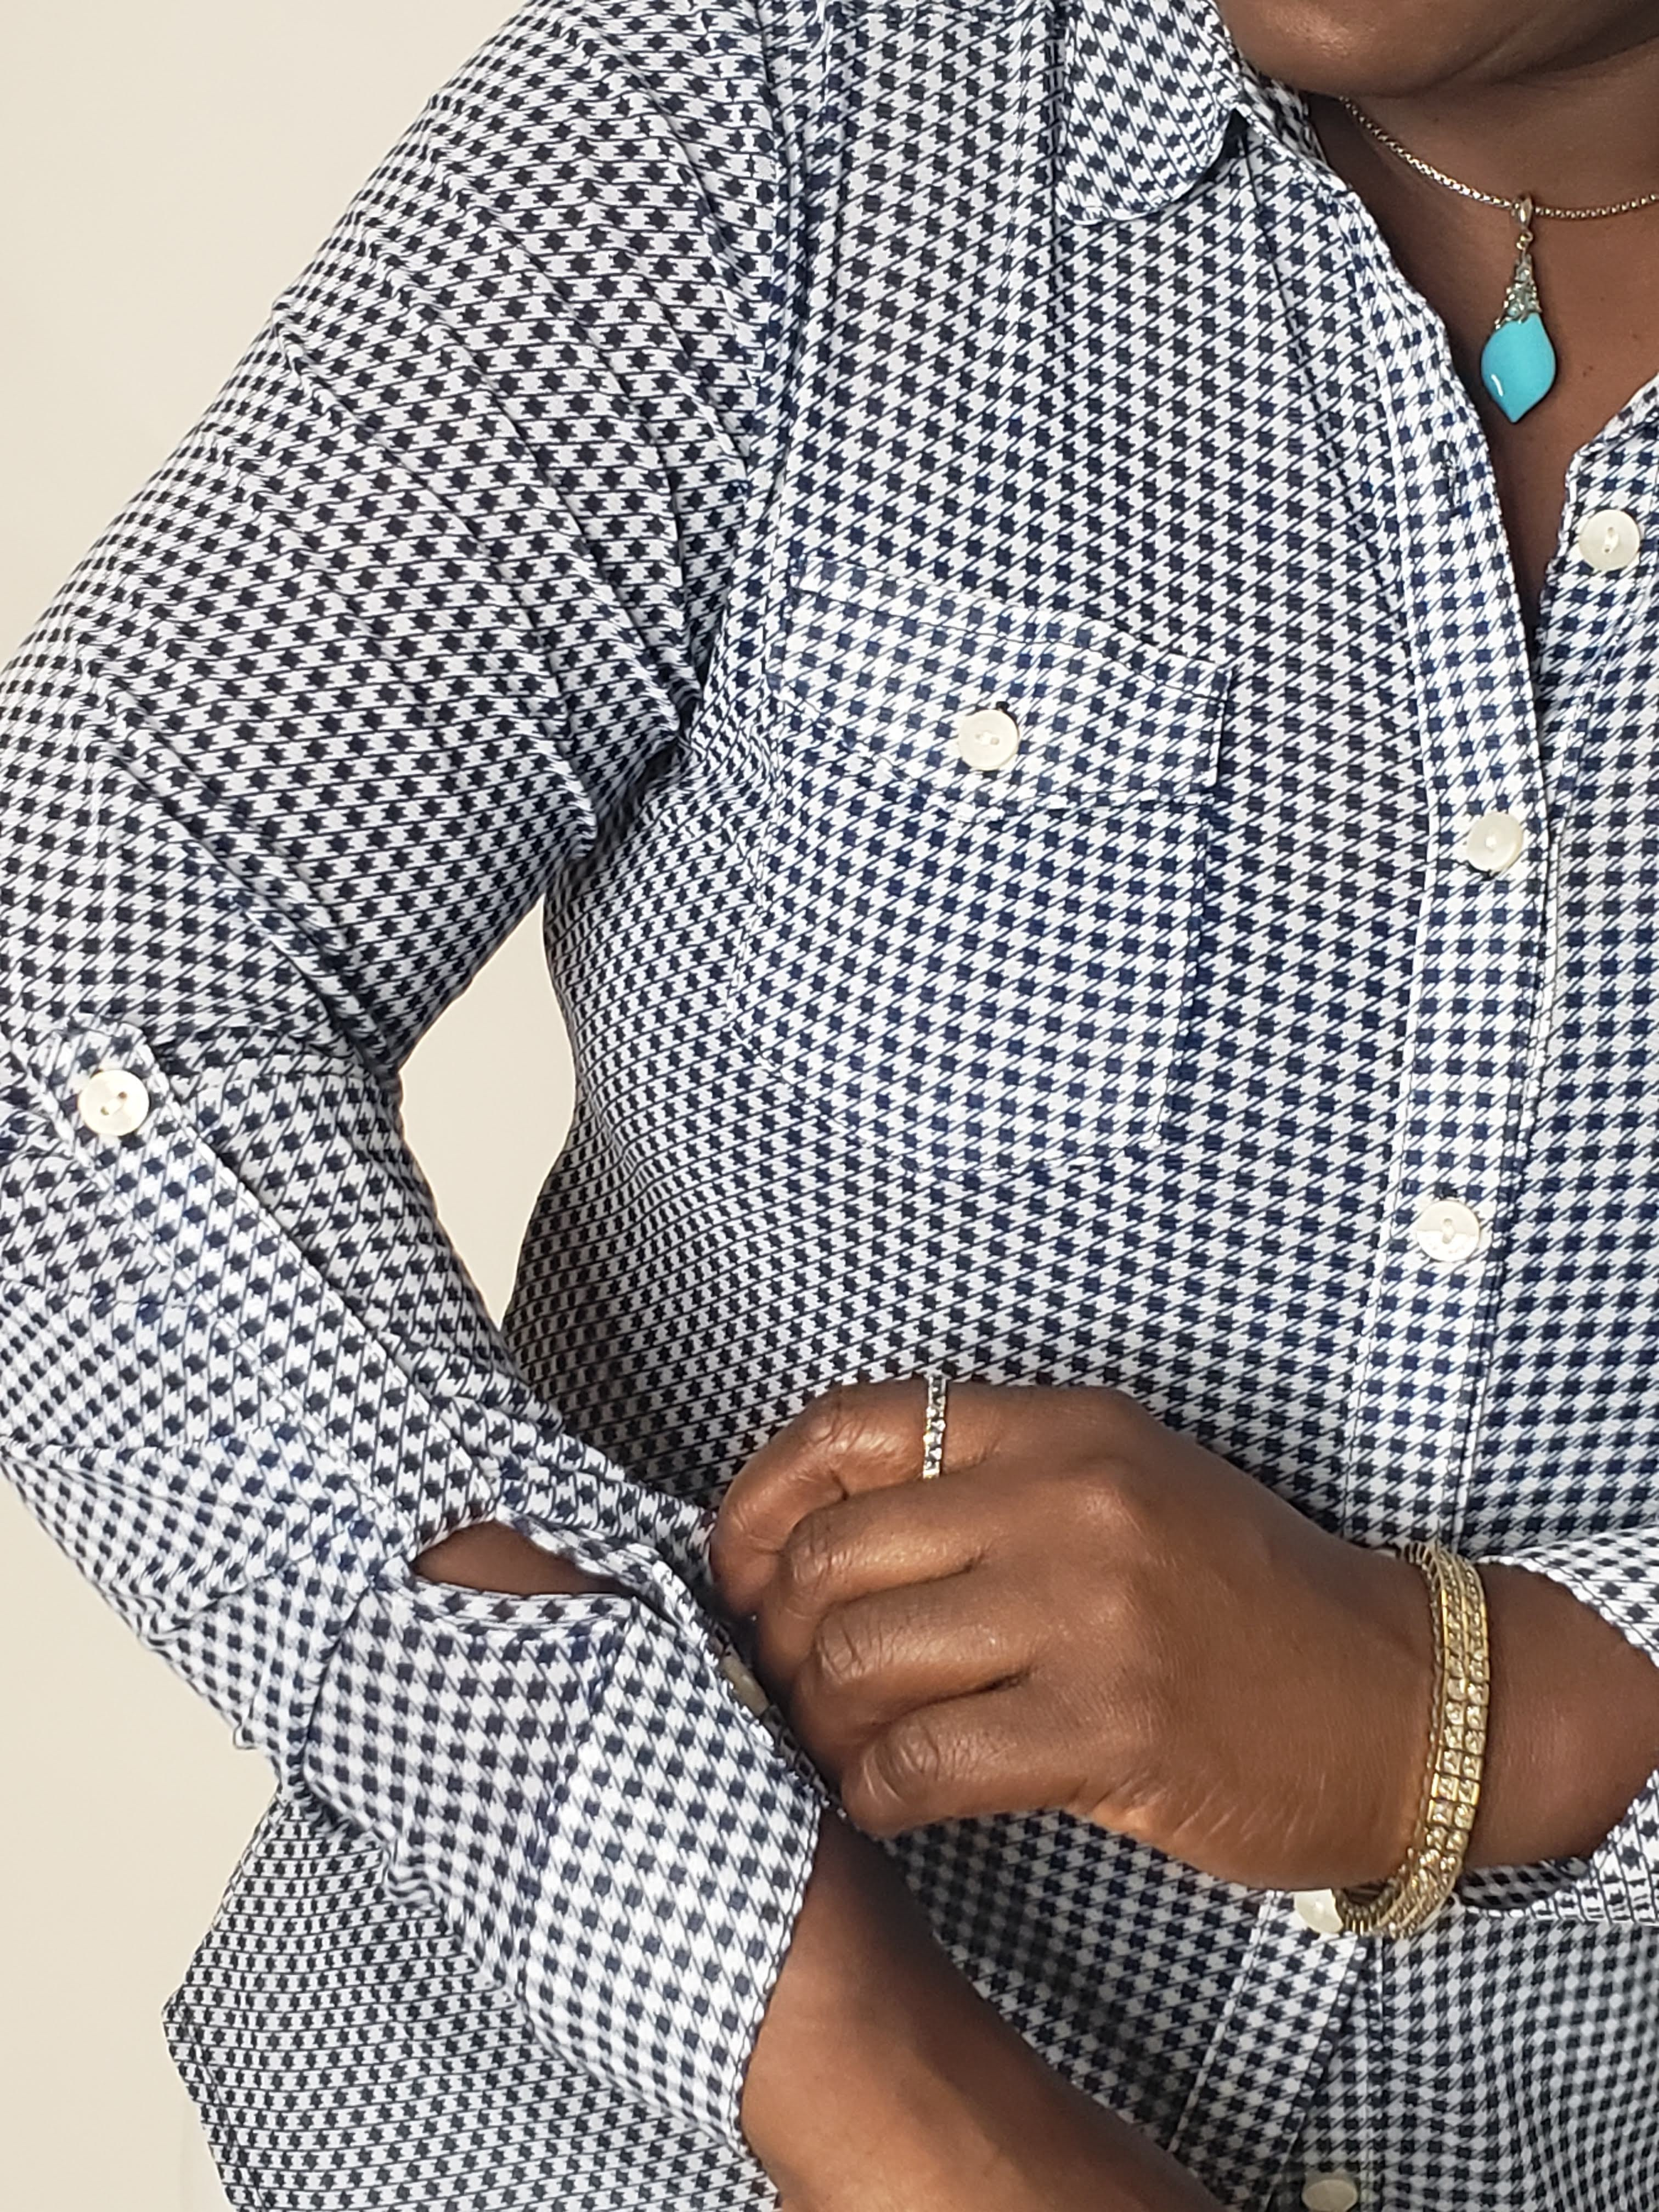 Gingham Stretch Blouse Navy White - Touch Me Textures